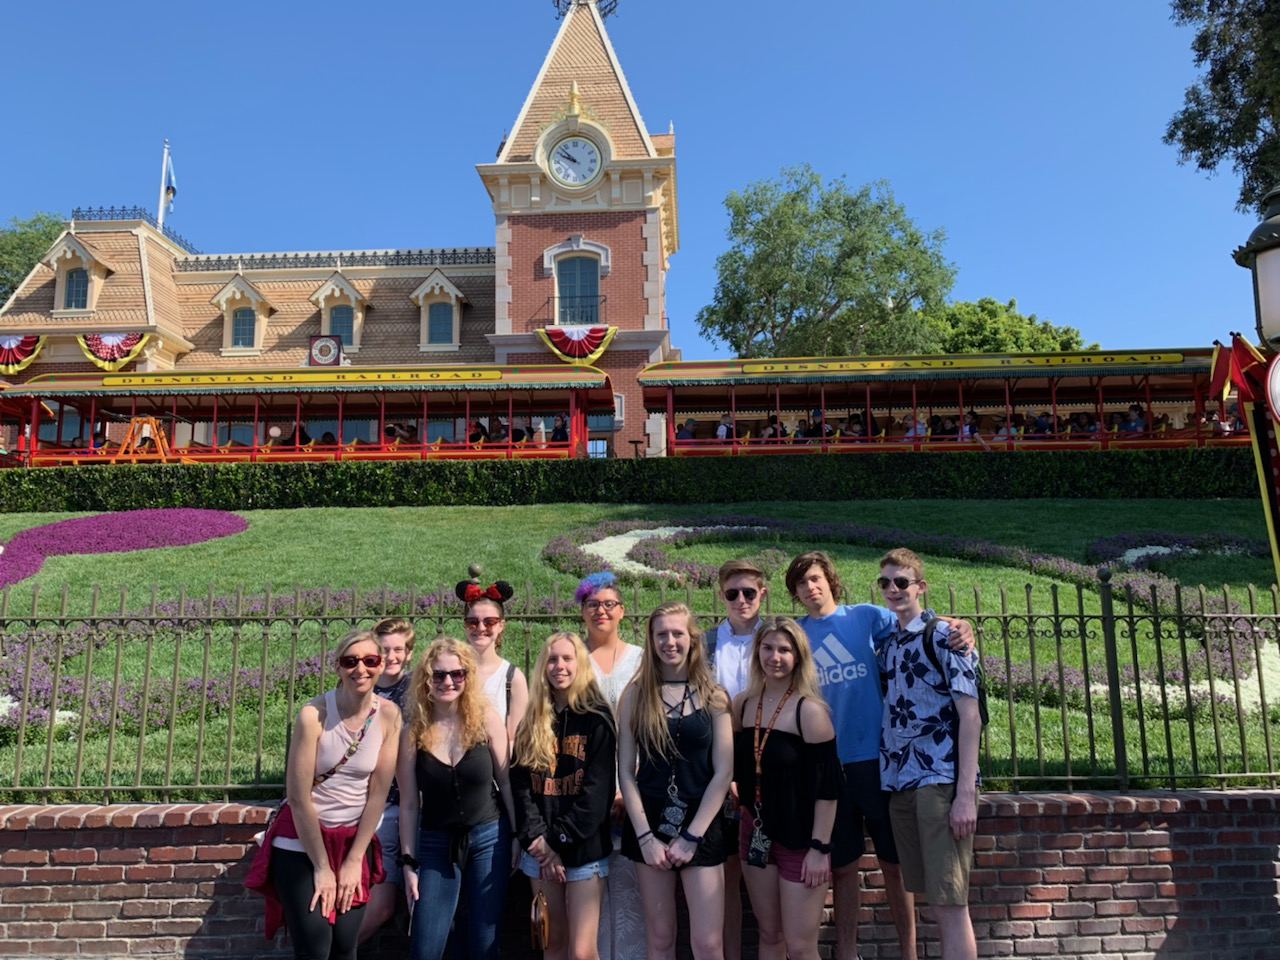 Spending+their+first+full+day+in+Anaheim+at+Disneyland%2C+Pony+Express+students+take+a+group+photo+before+their+13-hour+adventure.+